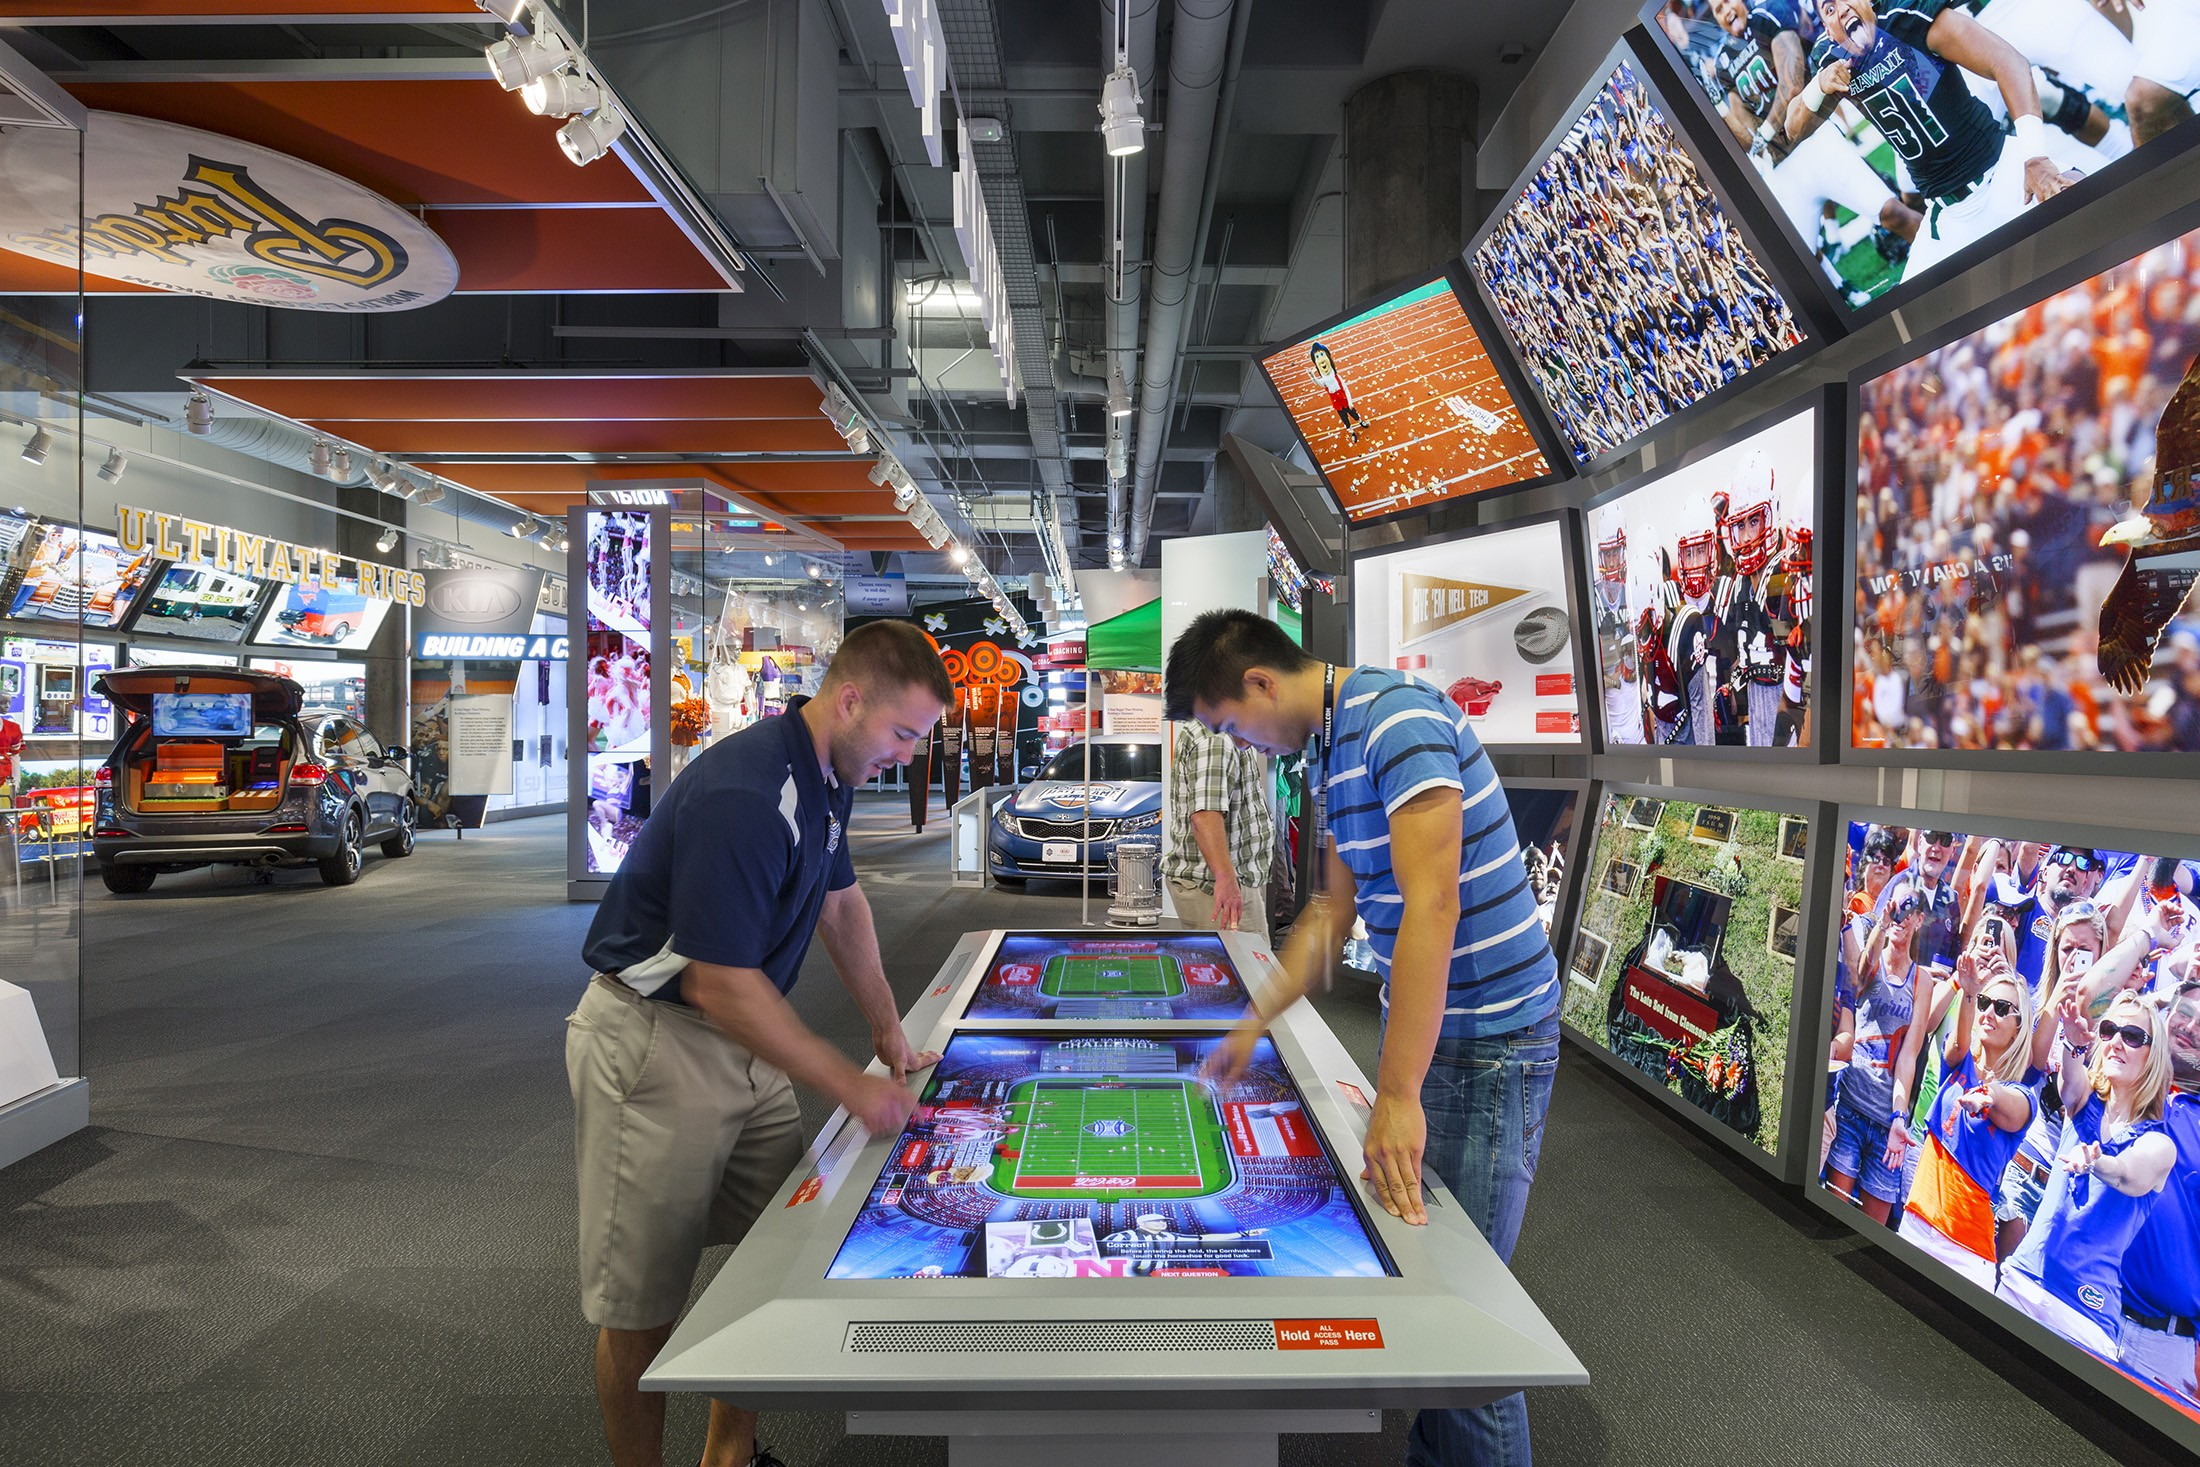 Football College College Hall  of Fame of Football - Hall